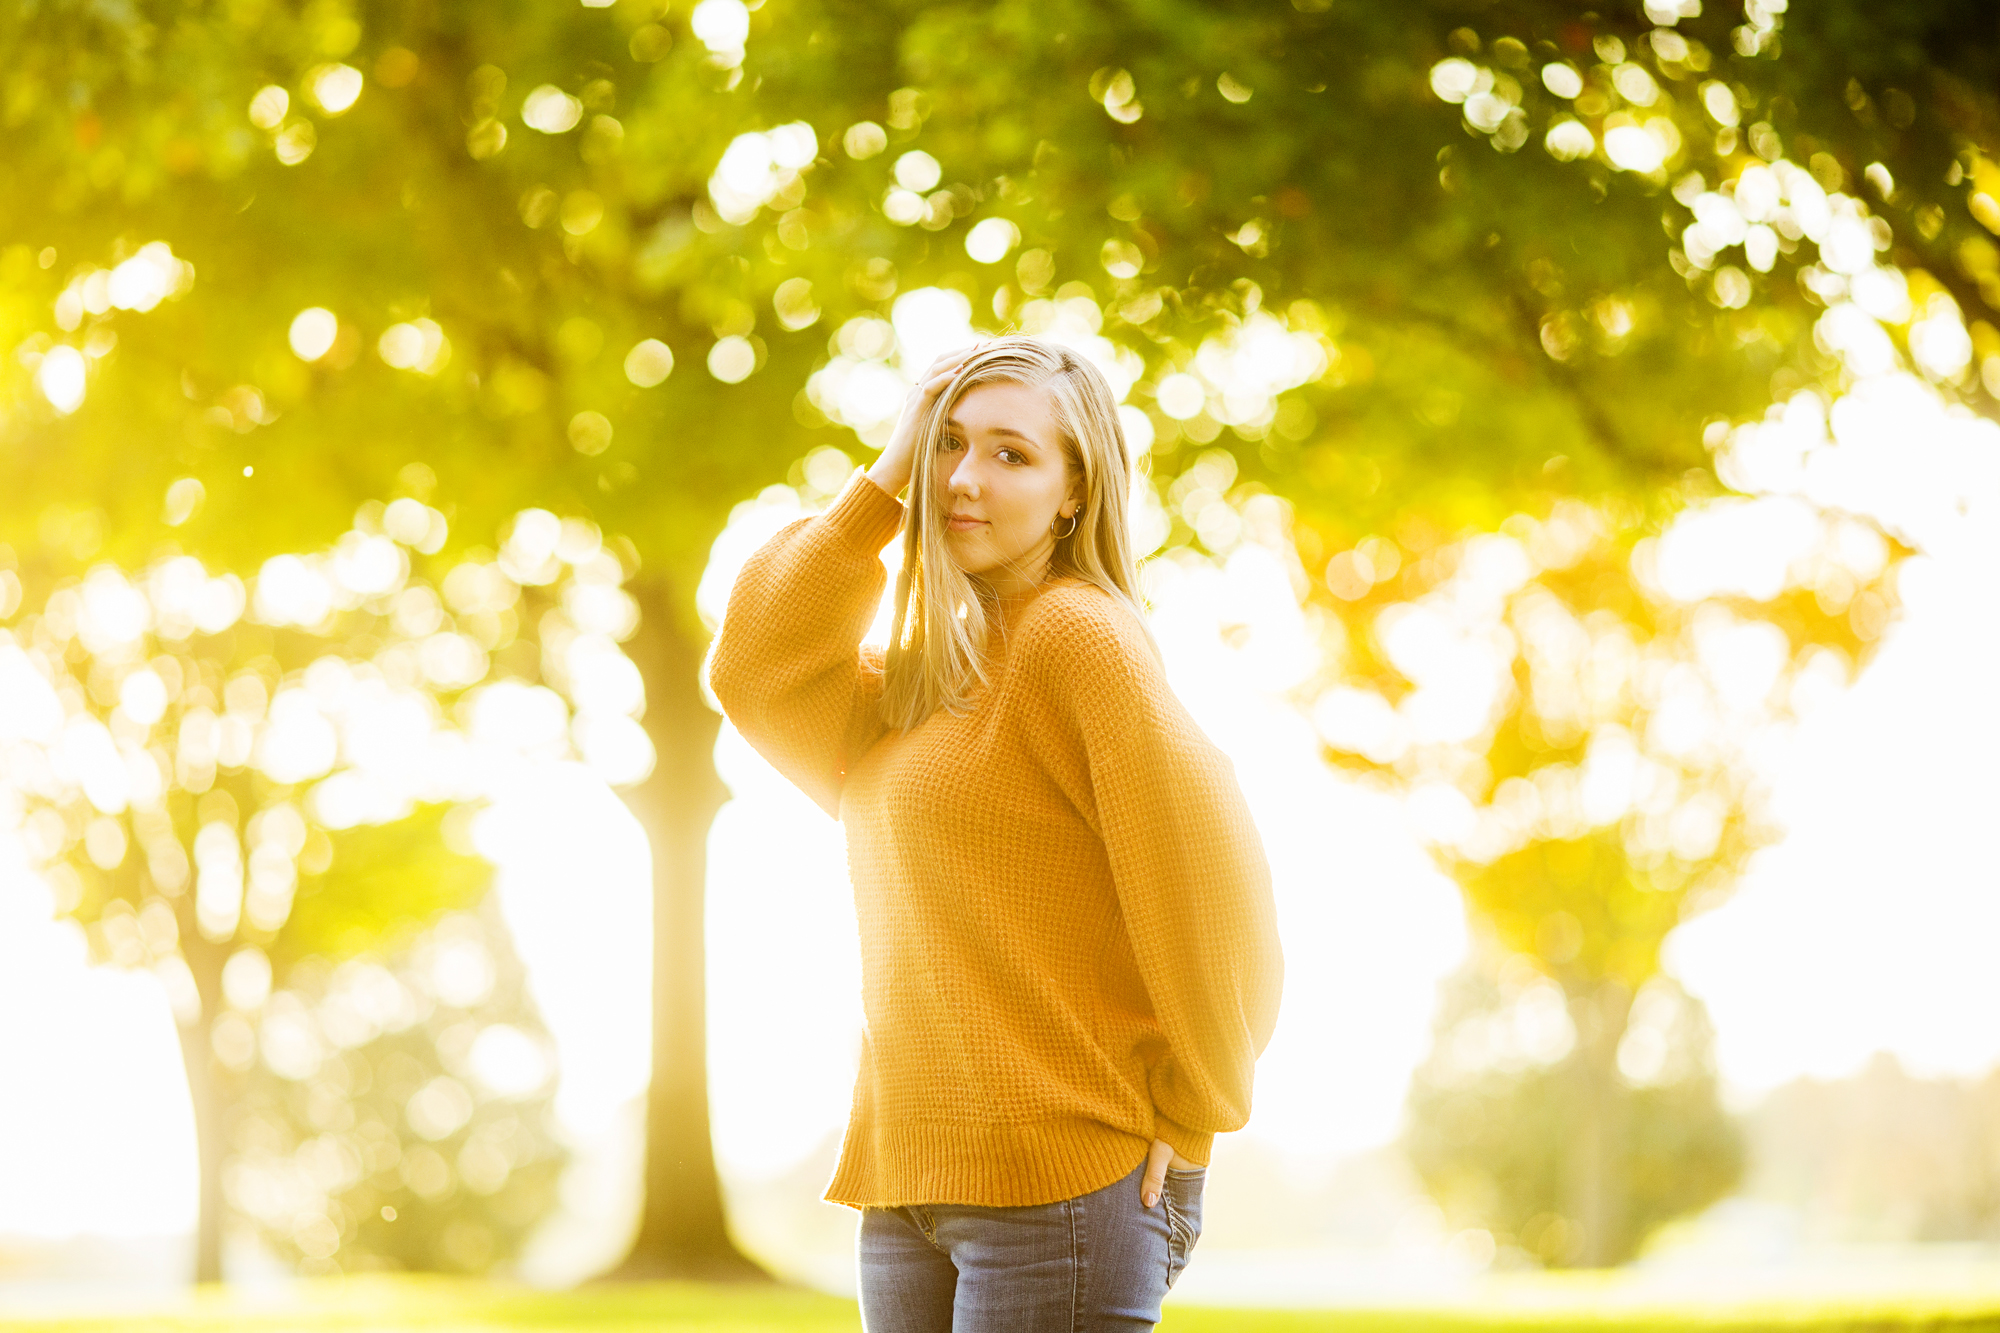 Seriously_Sabrina_Photography_Lexington_Kentucky_High_School_Senior_Camryn_McManis_18.jpg